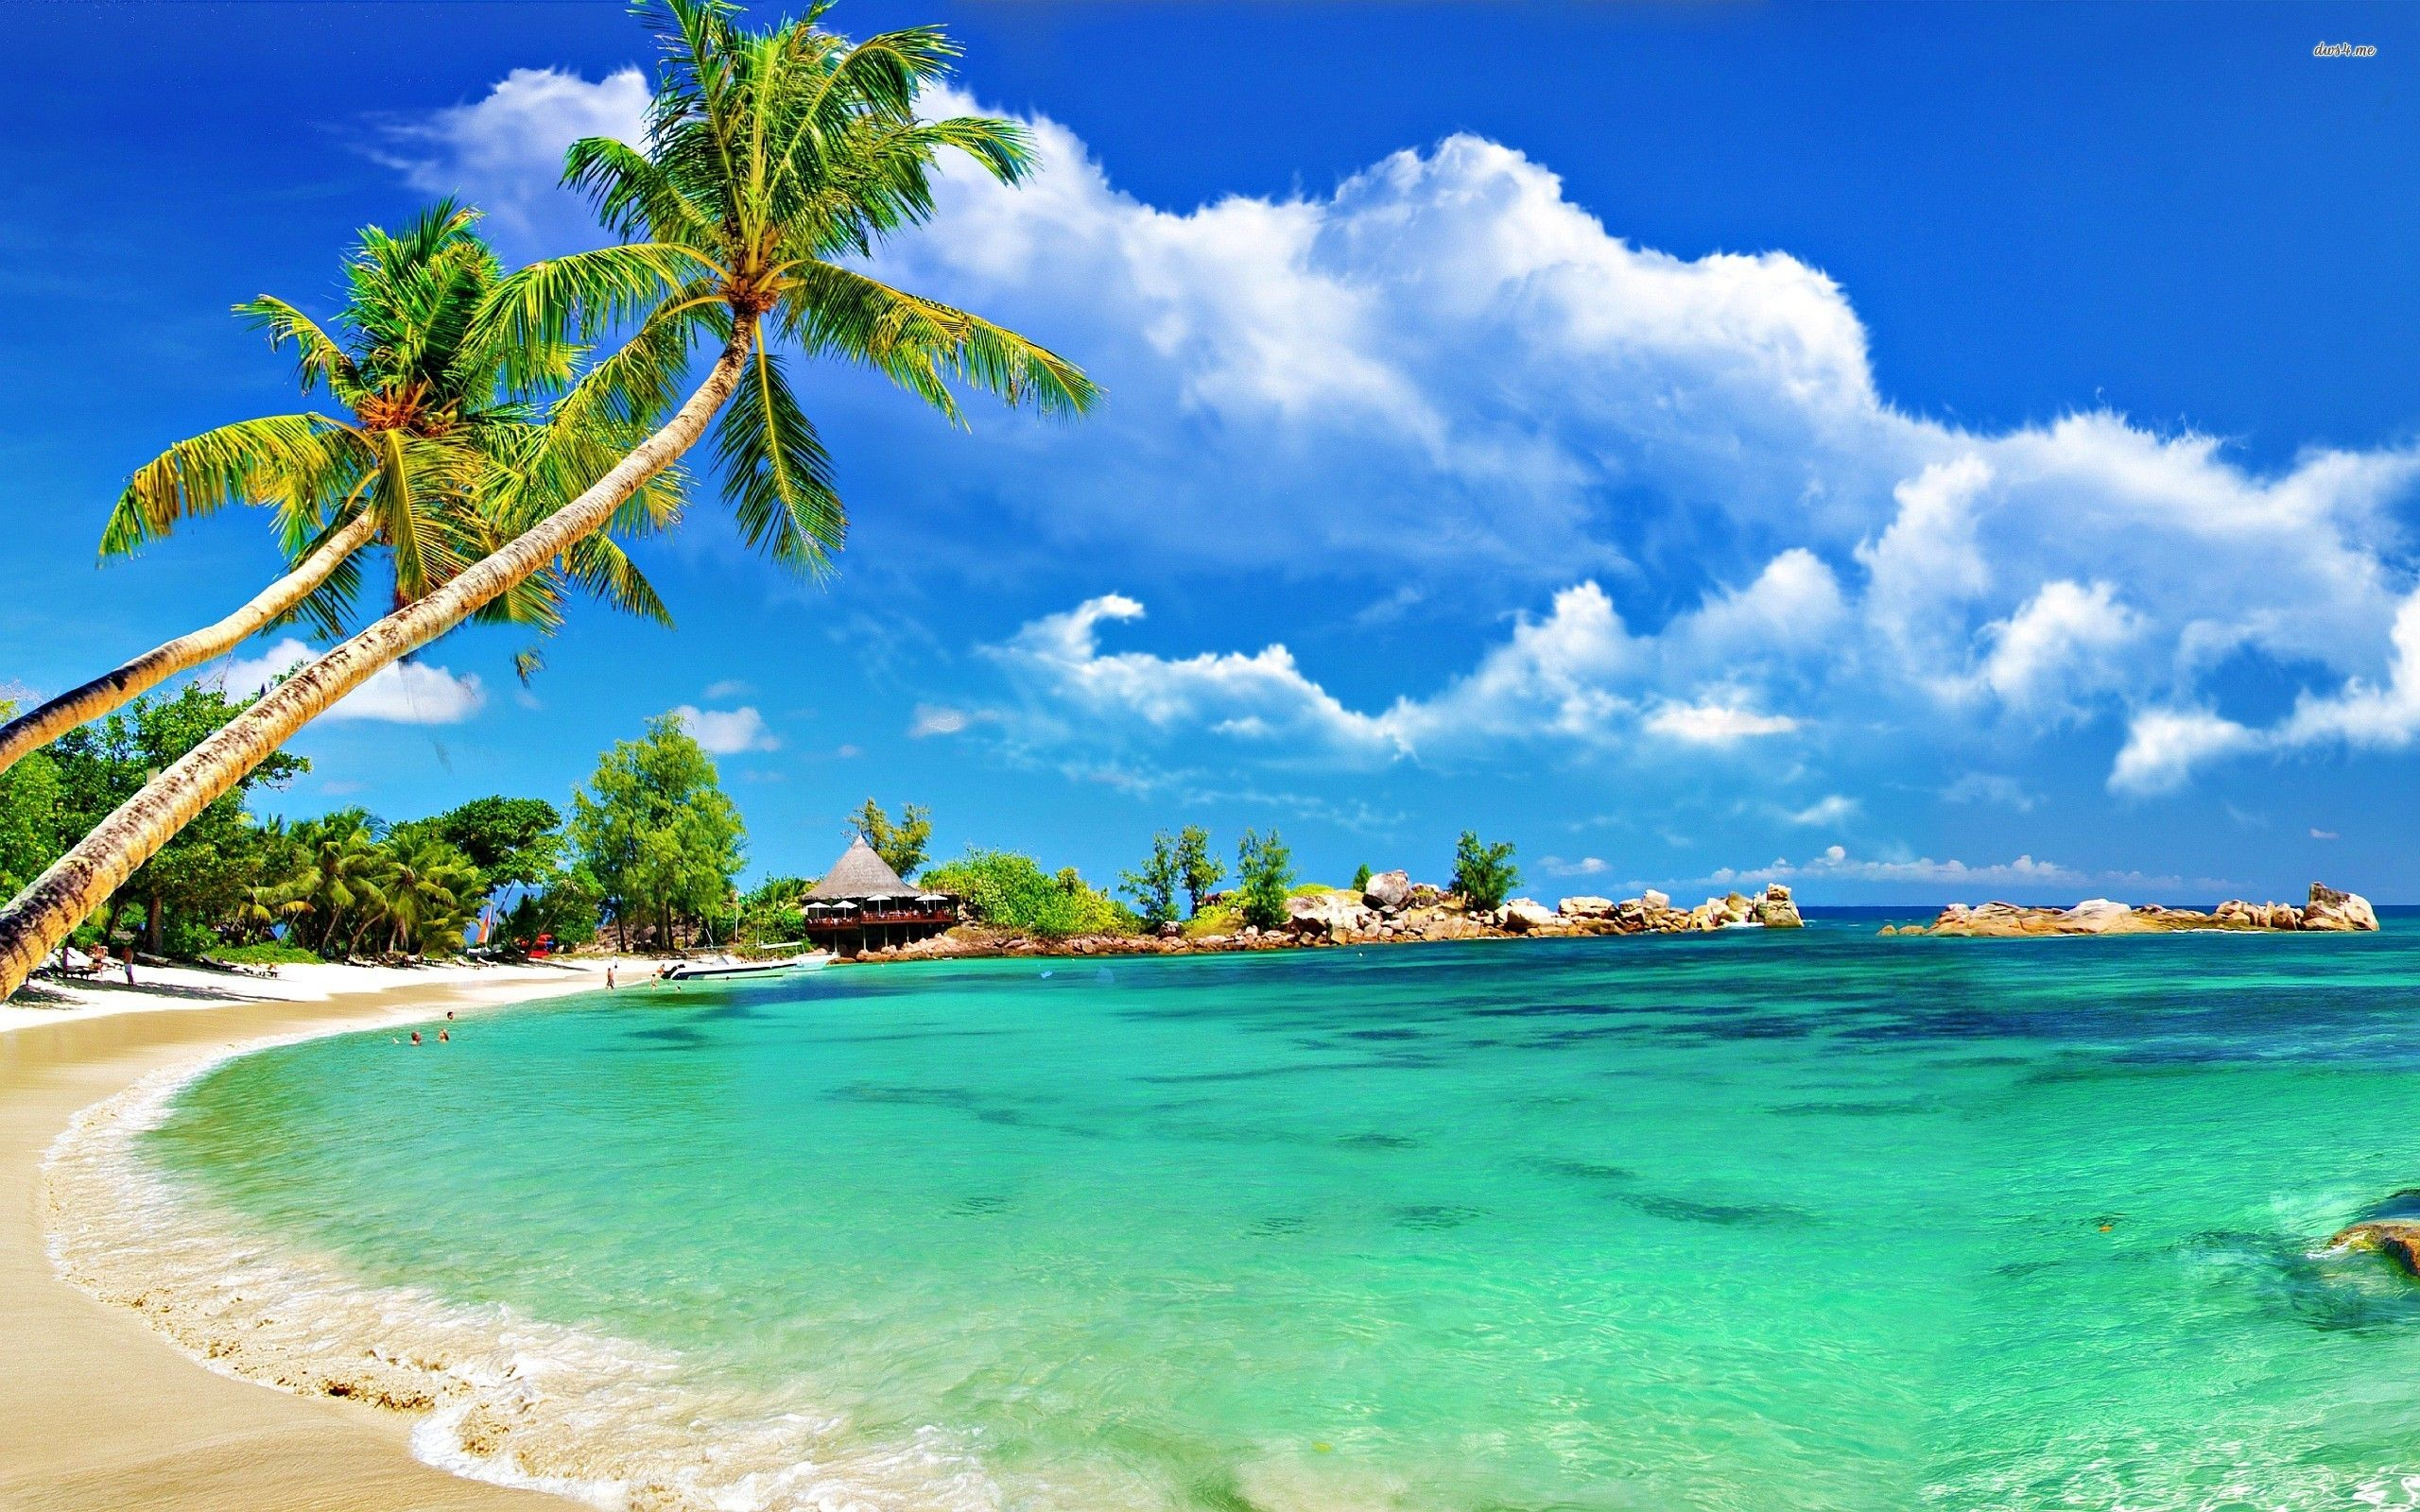 Tropical Beaches Hd Background Wallpaper 34 Hd Wallpapers Beach Background Beach Wallpaper Beach Images